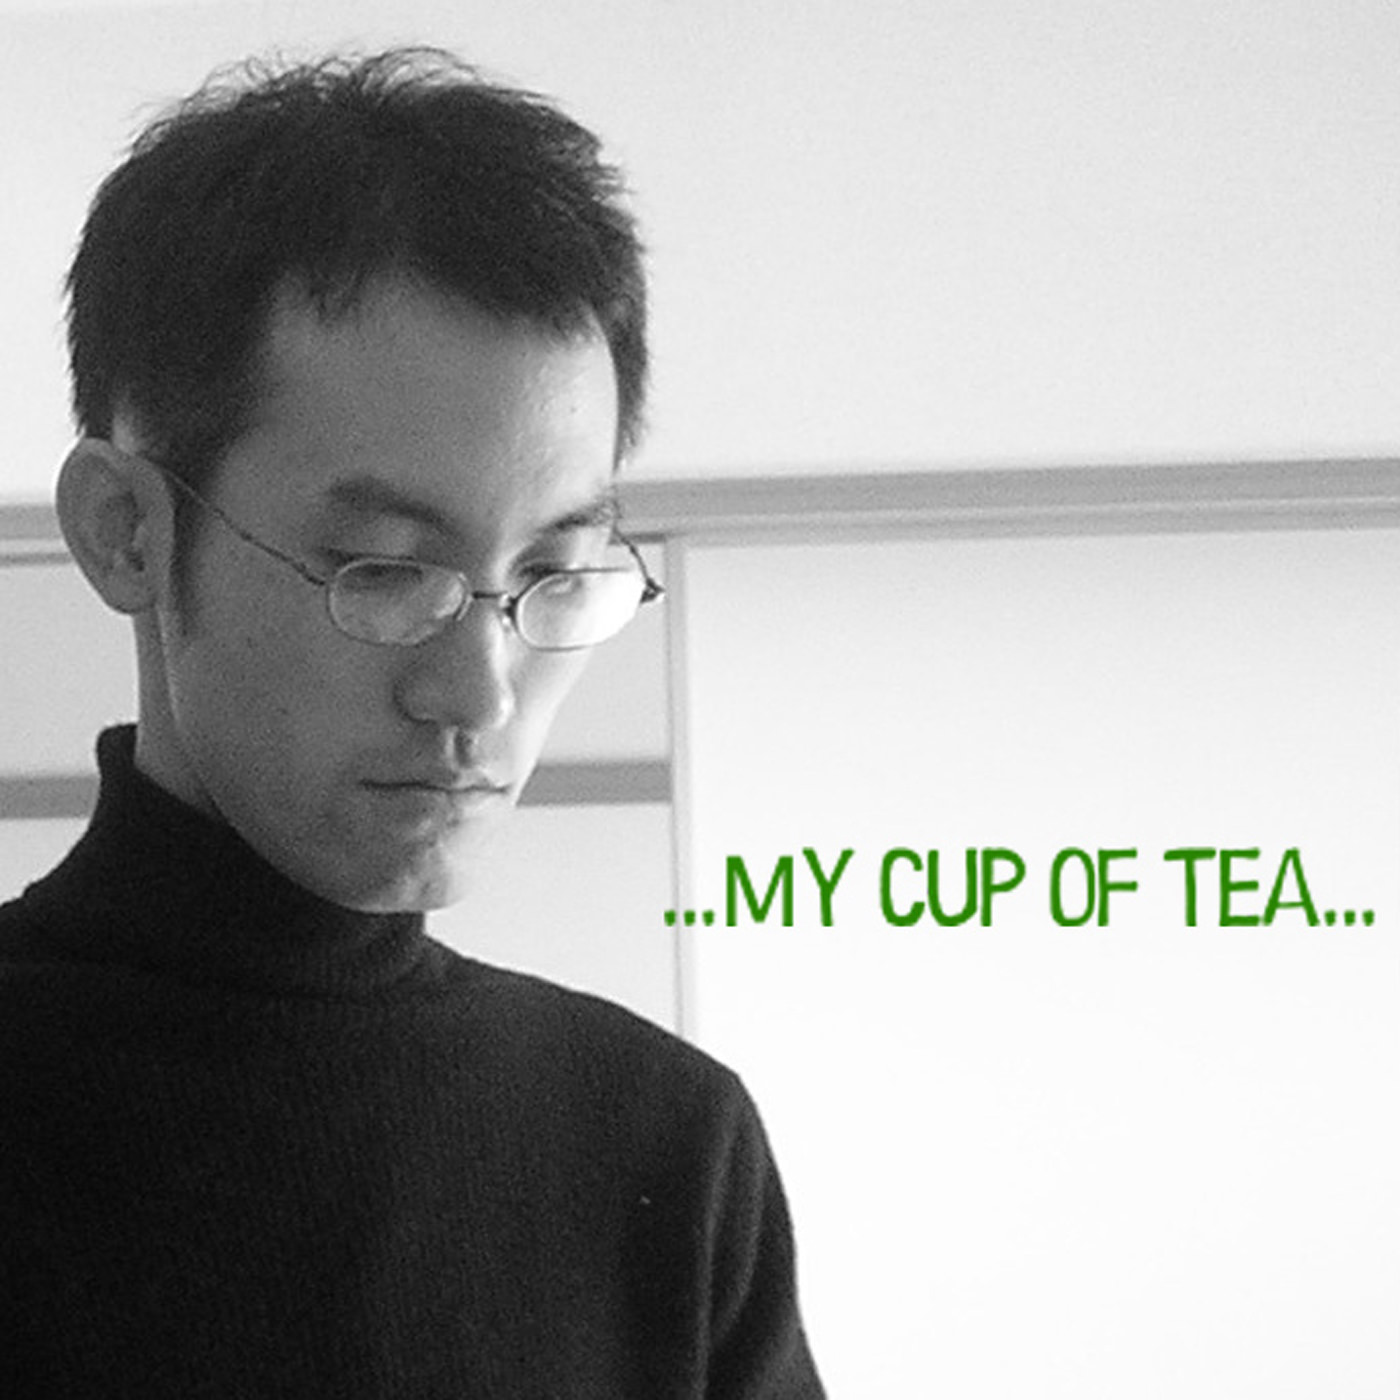 [ポ] ...My cup of tea...